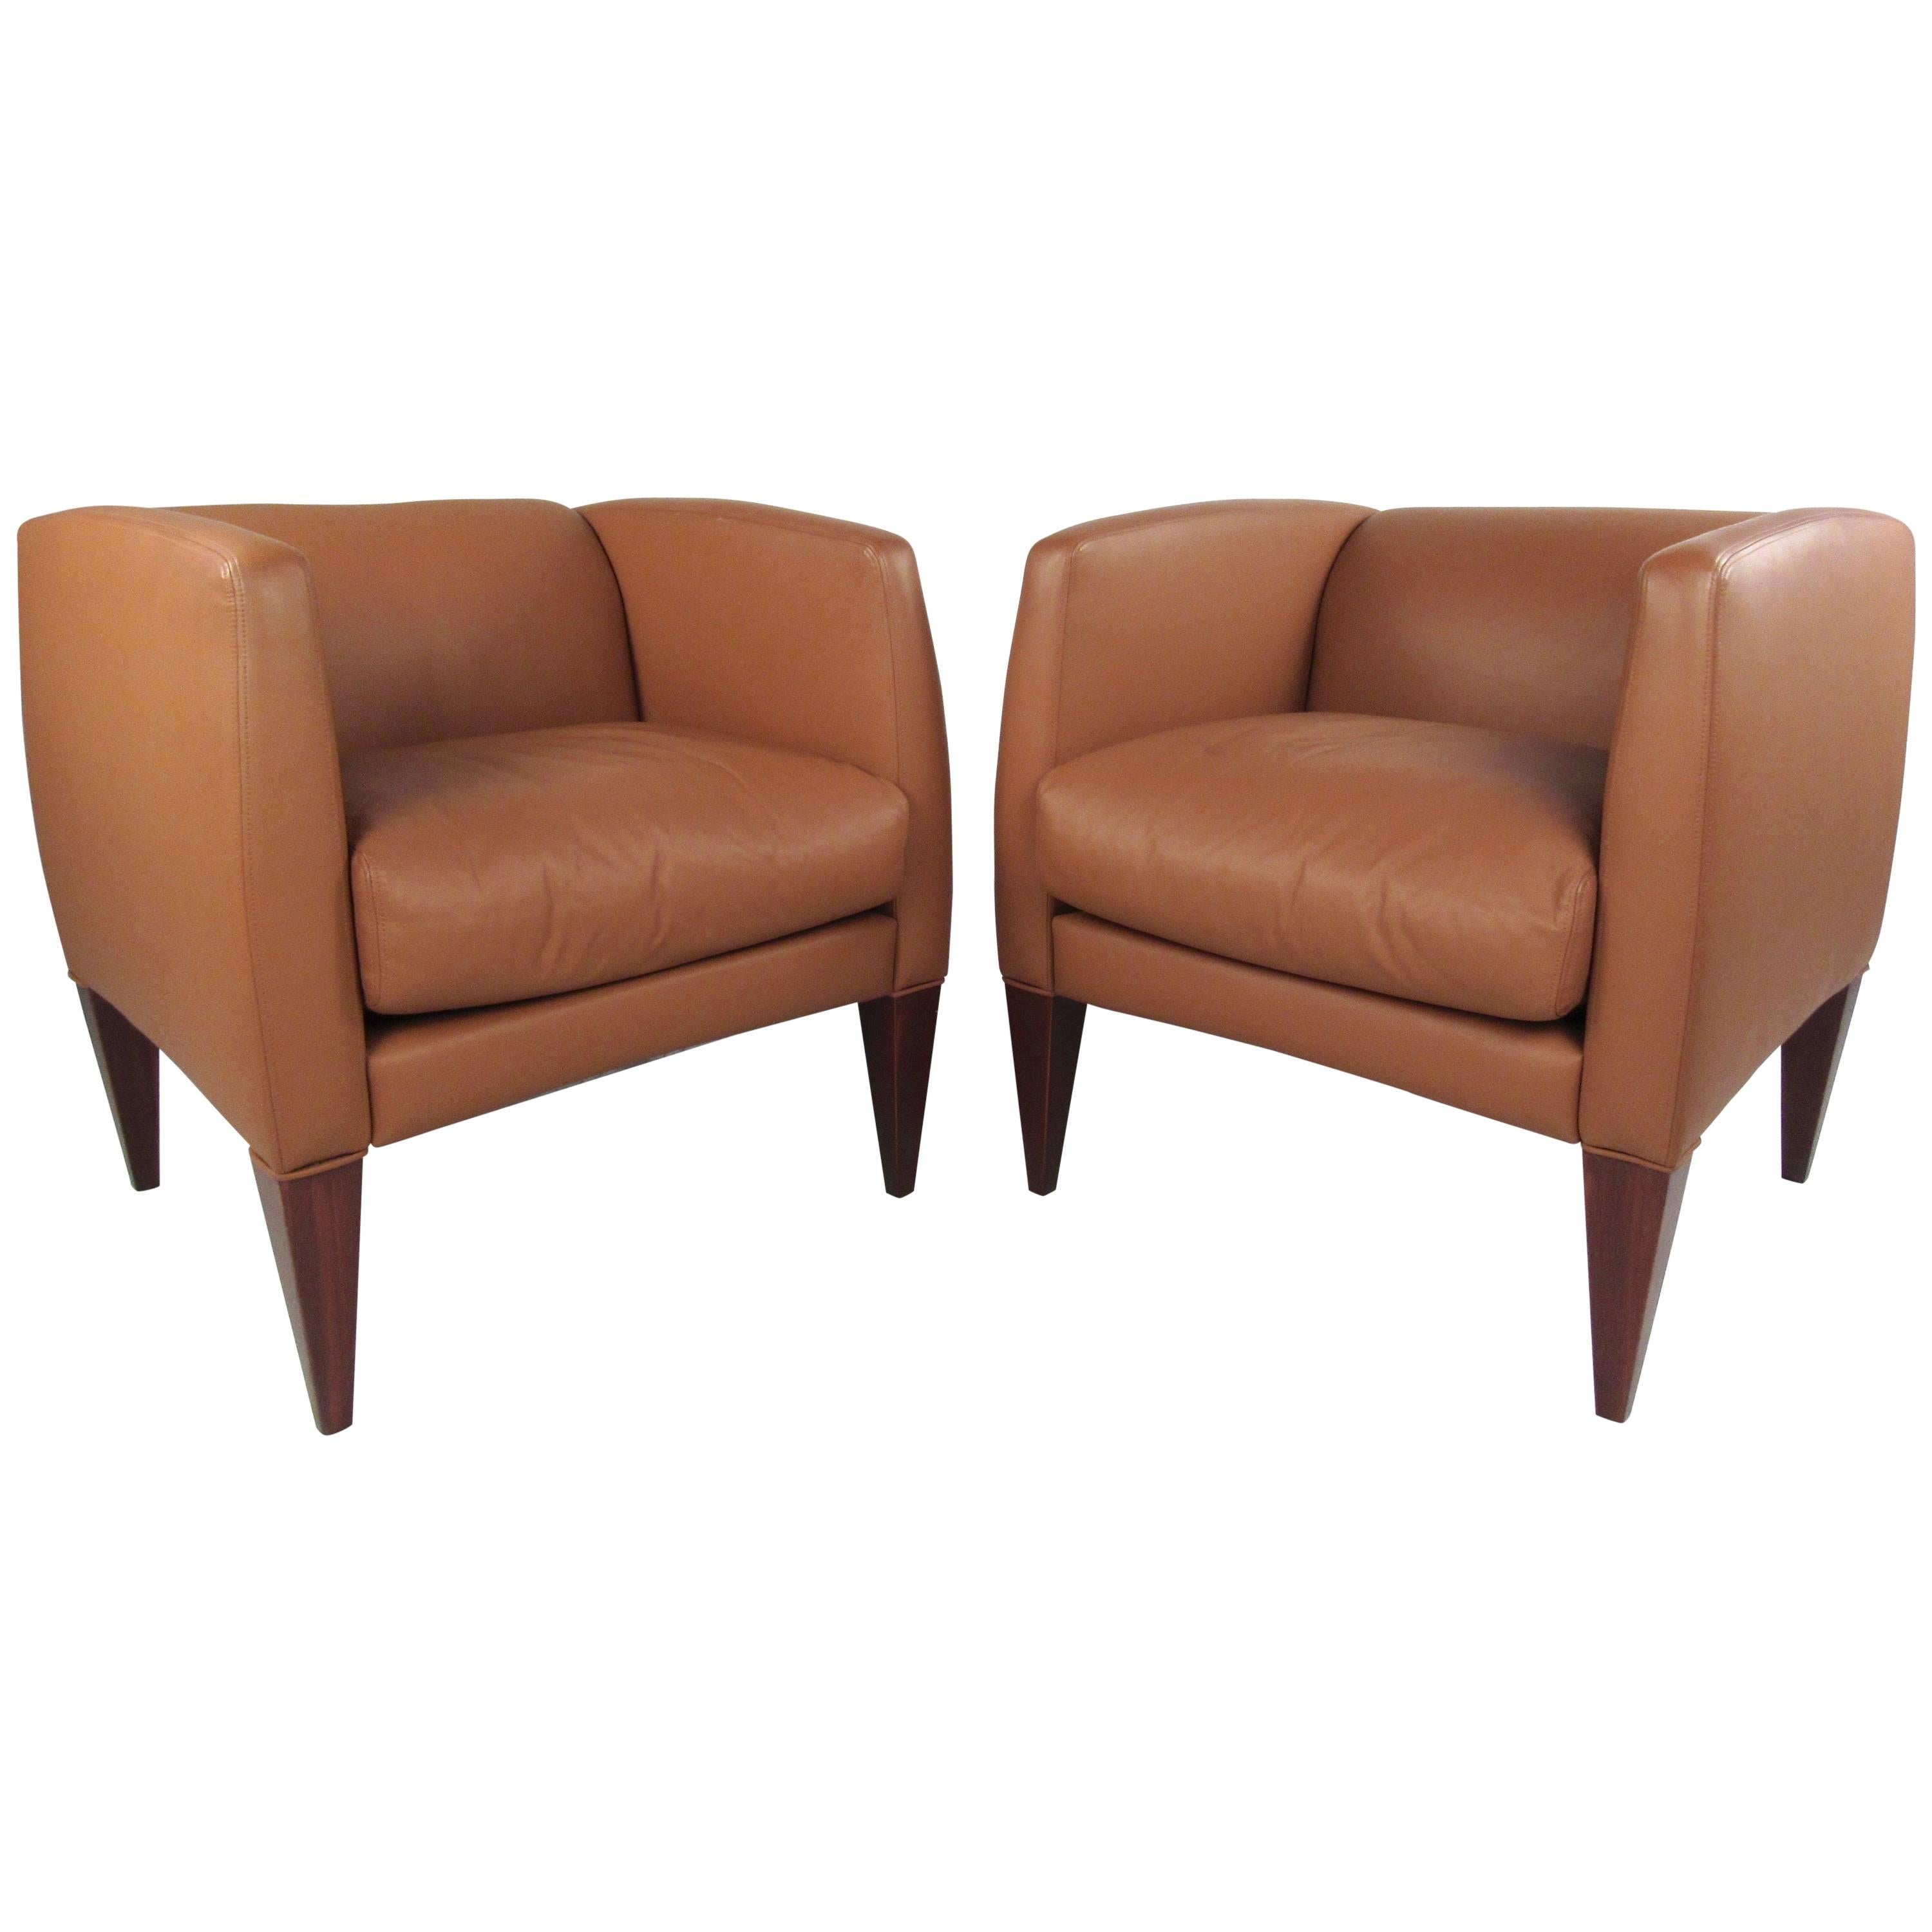 Superbe Pair Of Contemporary Modern Italian Leather Club Chairs